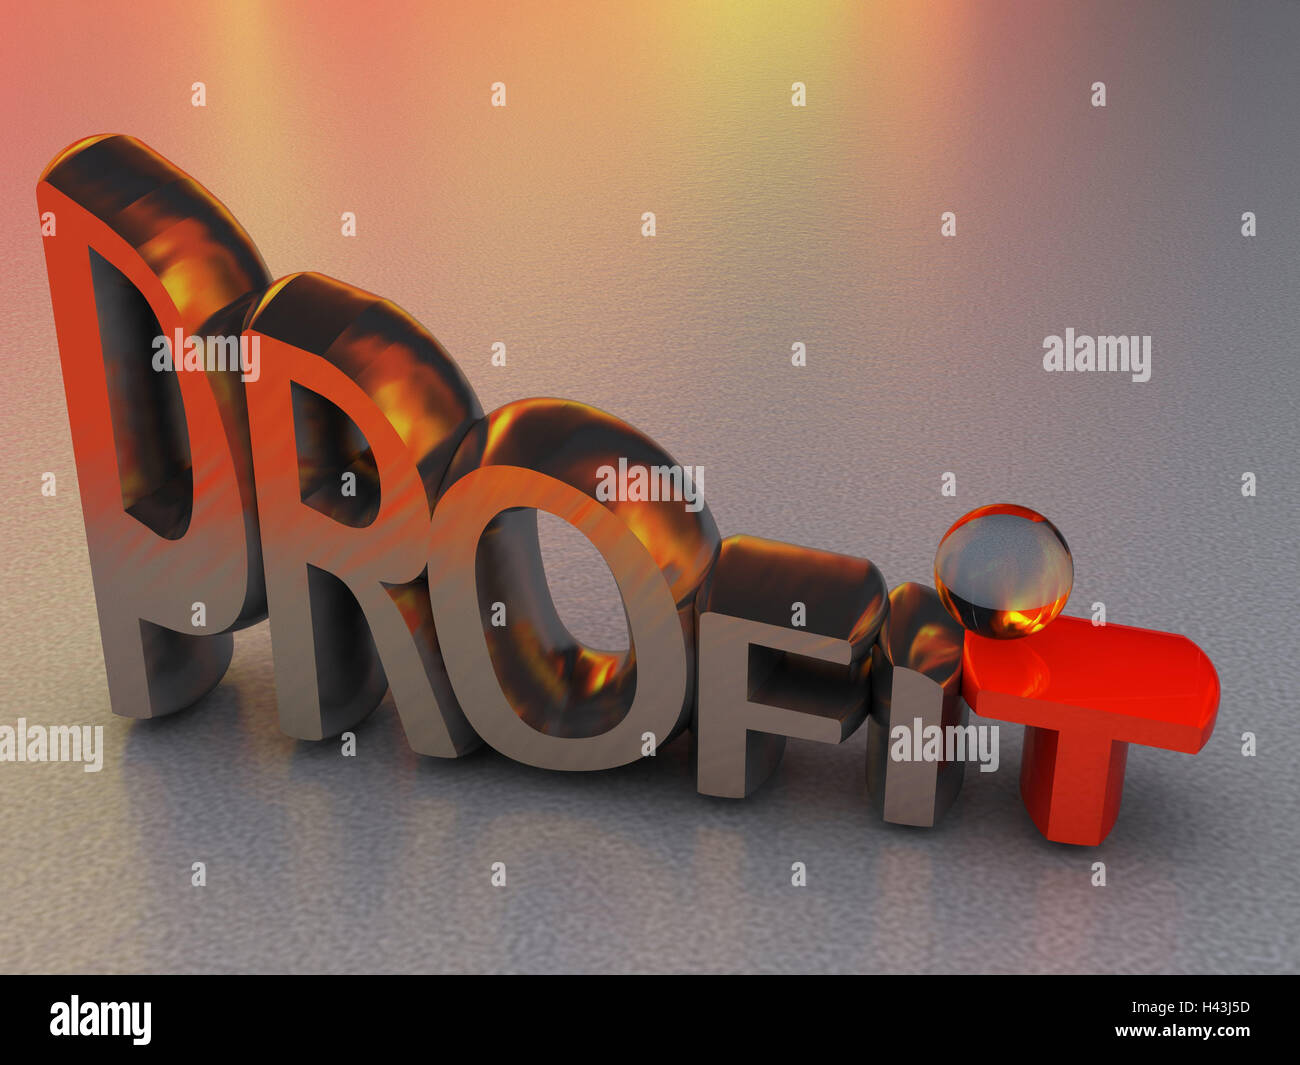 Metal letters, stroke, profit, shrink, 3d-graphics, letter, word, silver, red, economy, finances, firelight, crisis, - Stock Image